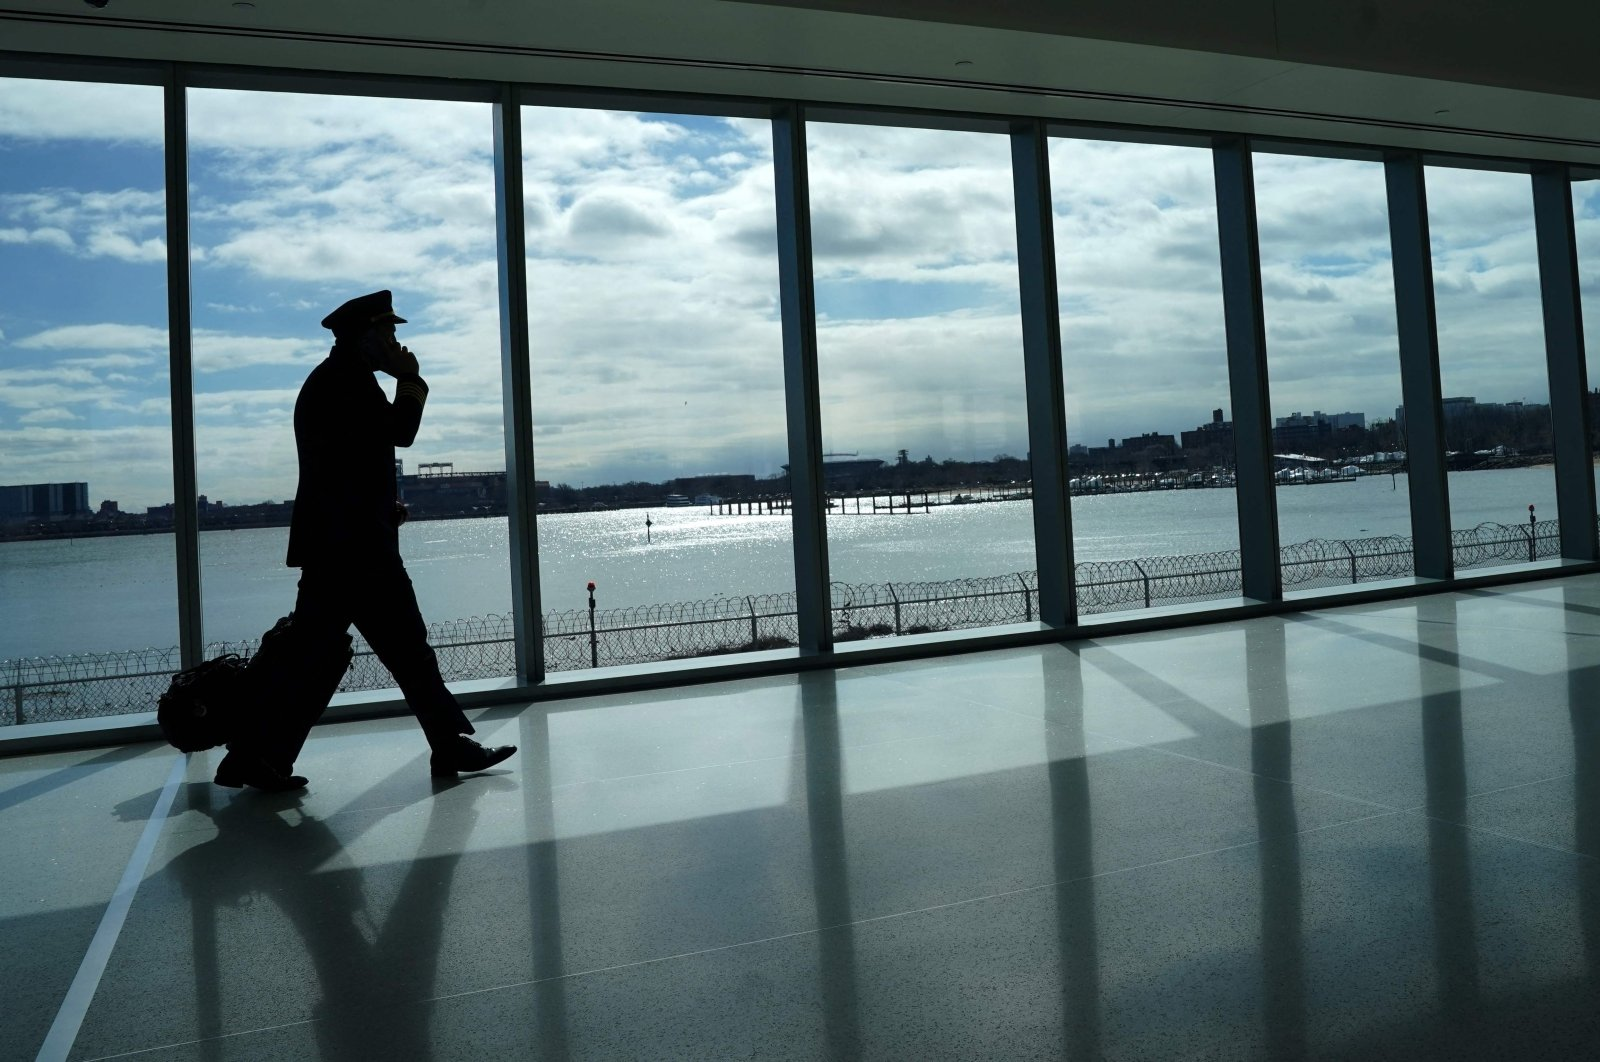 A pilot walks past the windows at LaGuardia Airport in New York, the U.S., March 6, 2021. (AFP Photo)